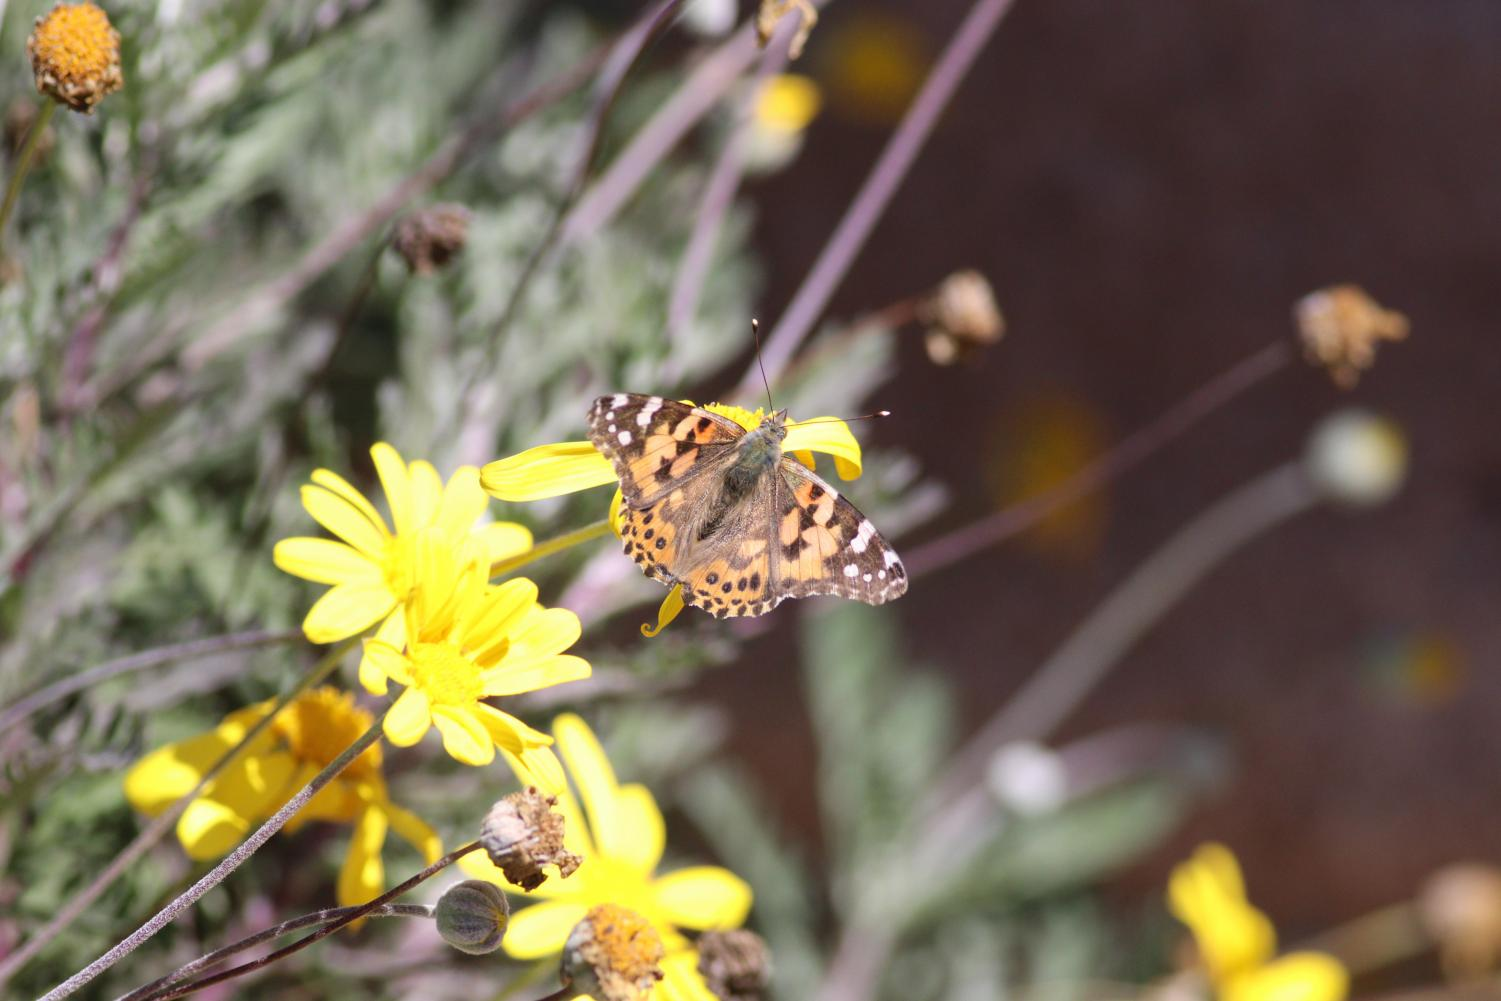 In a time where butterfly populations are dwindling, painted ladies were seen fluttering around Southern California from March 17 through the next few days, as they migrated up the coast from Mexico headed to Oregon for mating season